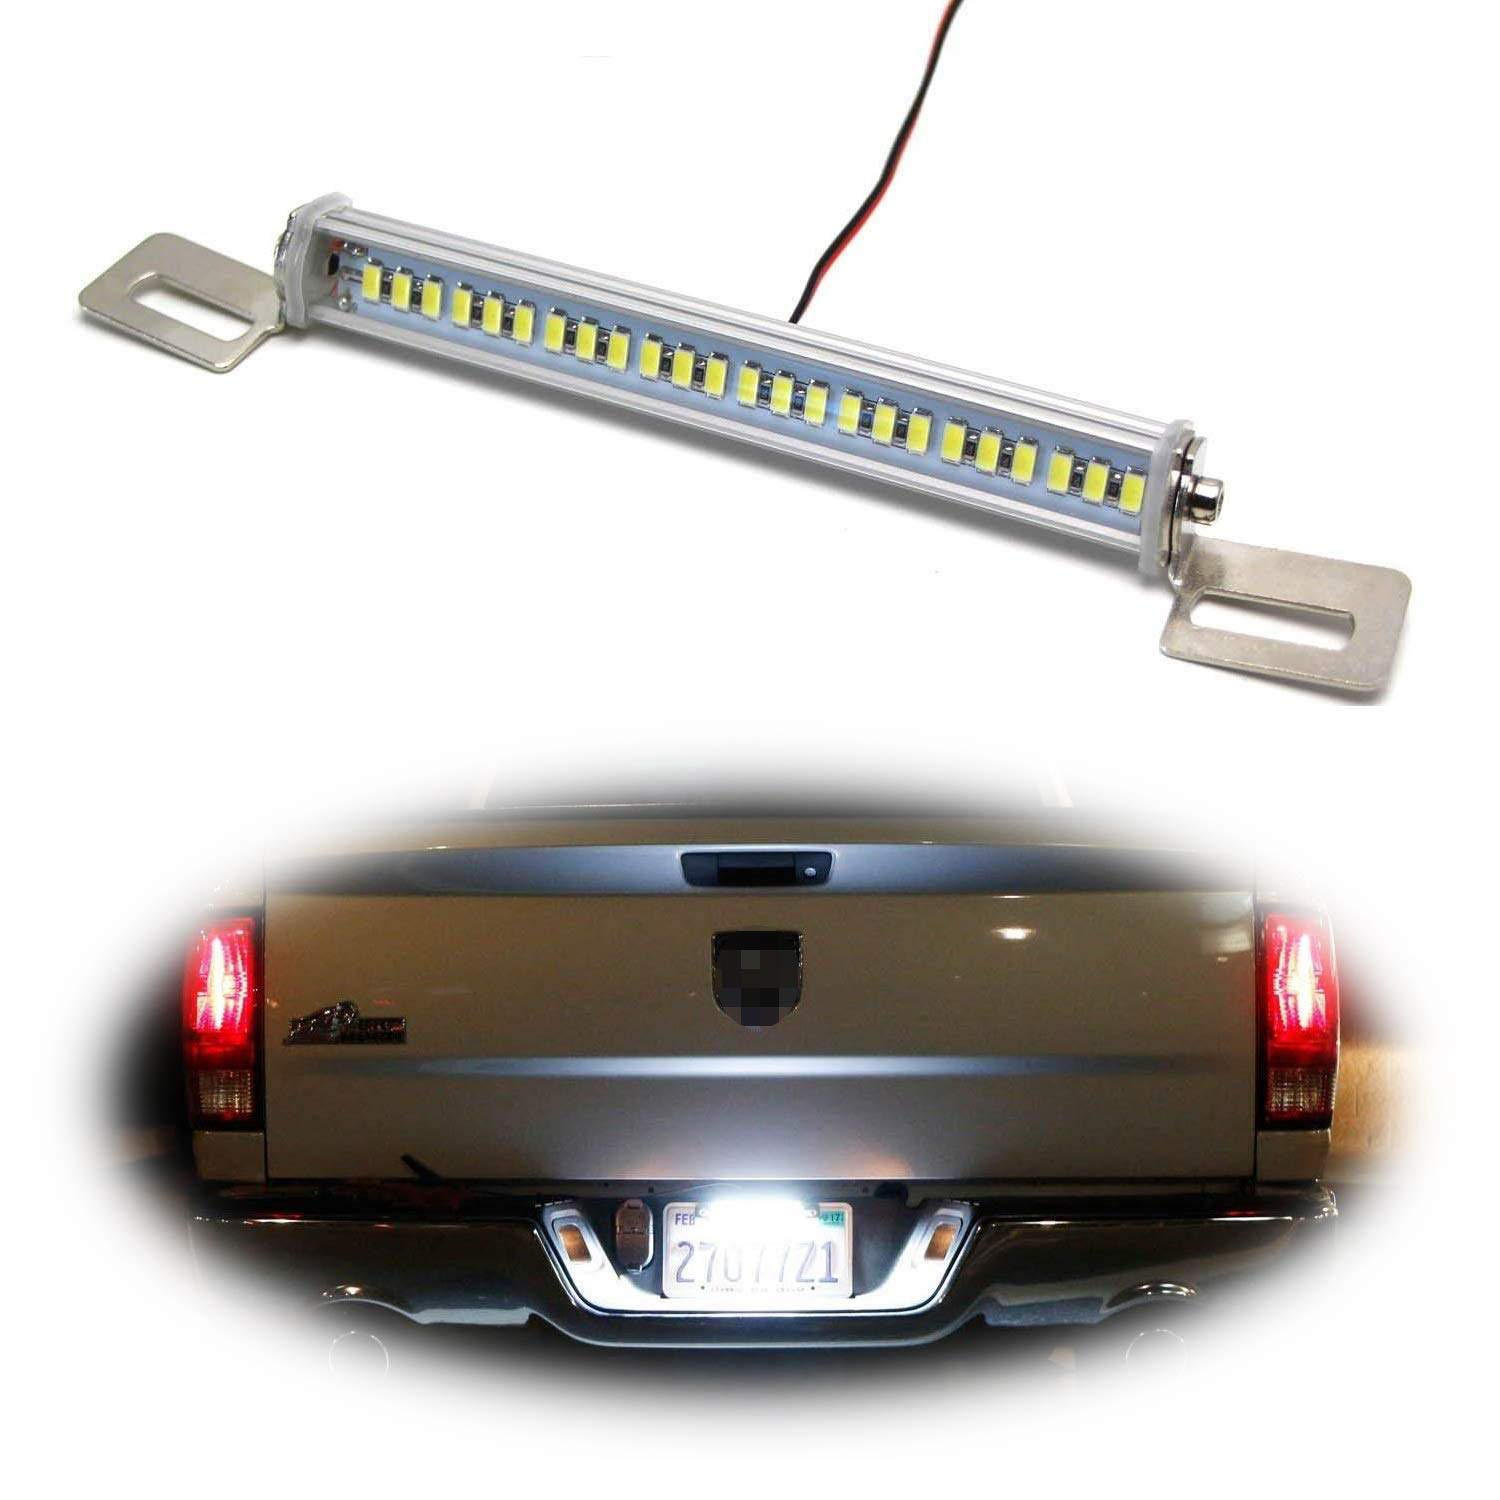 Door Parts In Addition 2004 Vw Jetta Tail Light Wiring Diagram As Well